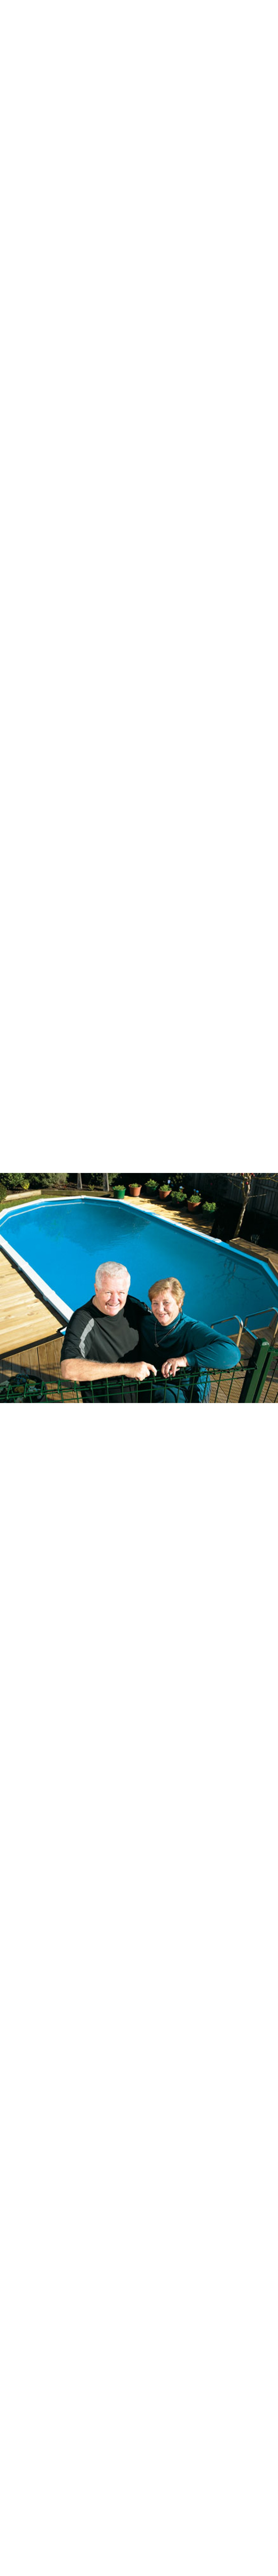 Big-Six Swimming Pool -  installed in-ground with seats showing.